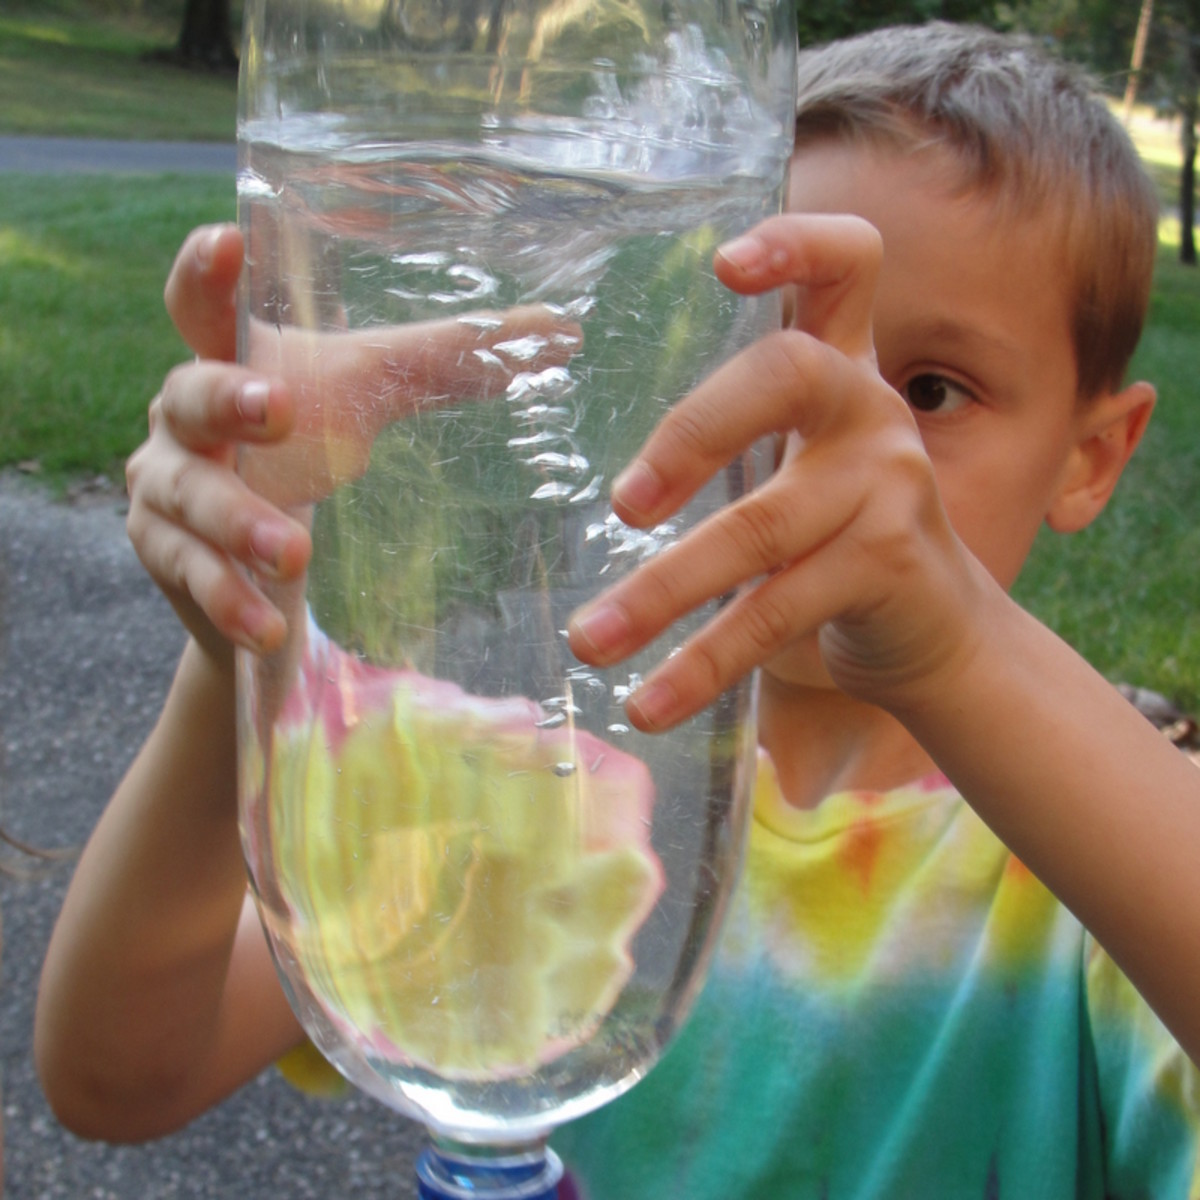 Tornado in a Bottle activity from Lesson 4: Tornadoes, Hurricanes, and Lightening Lesson